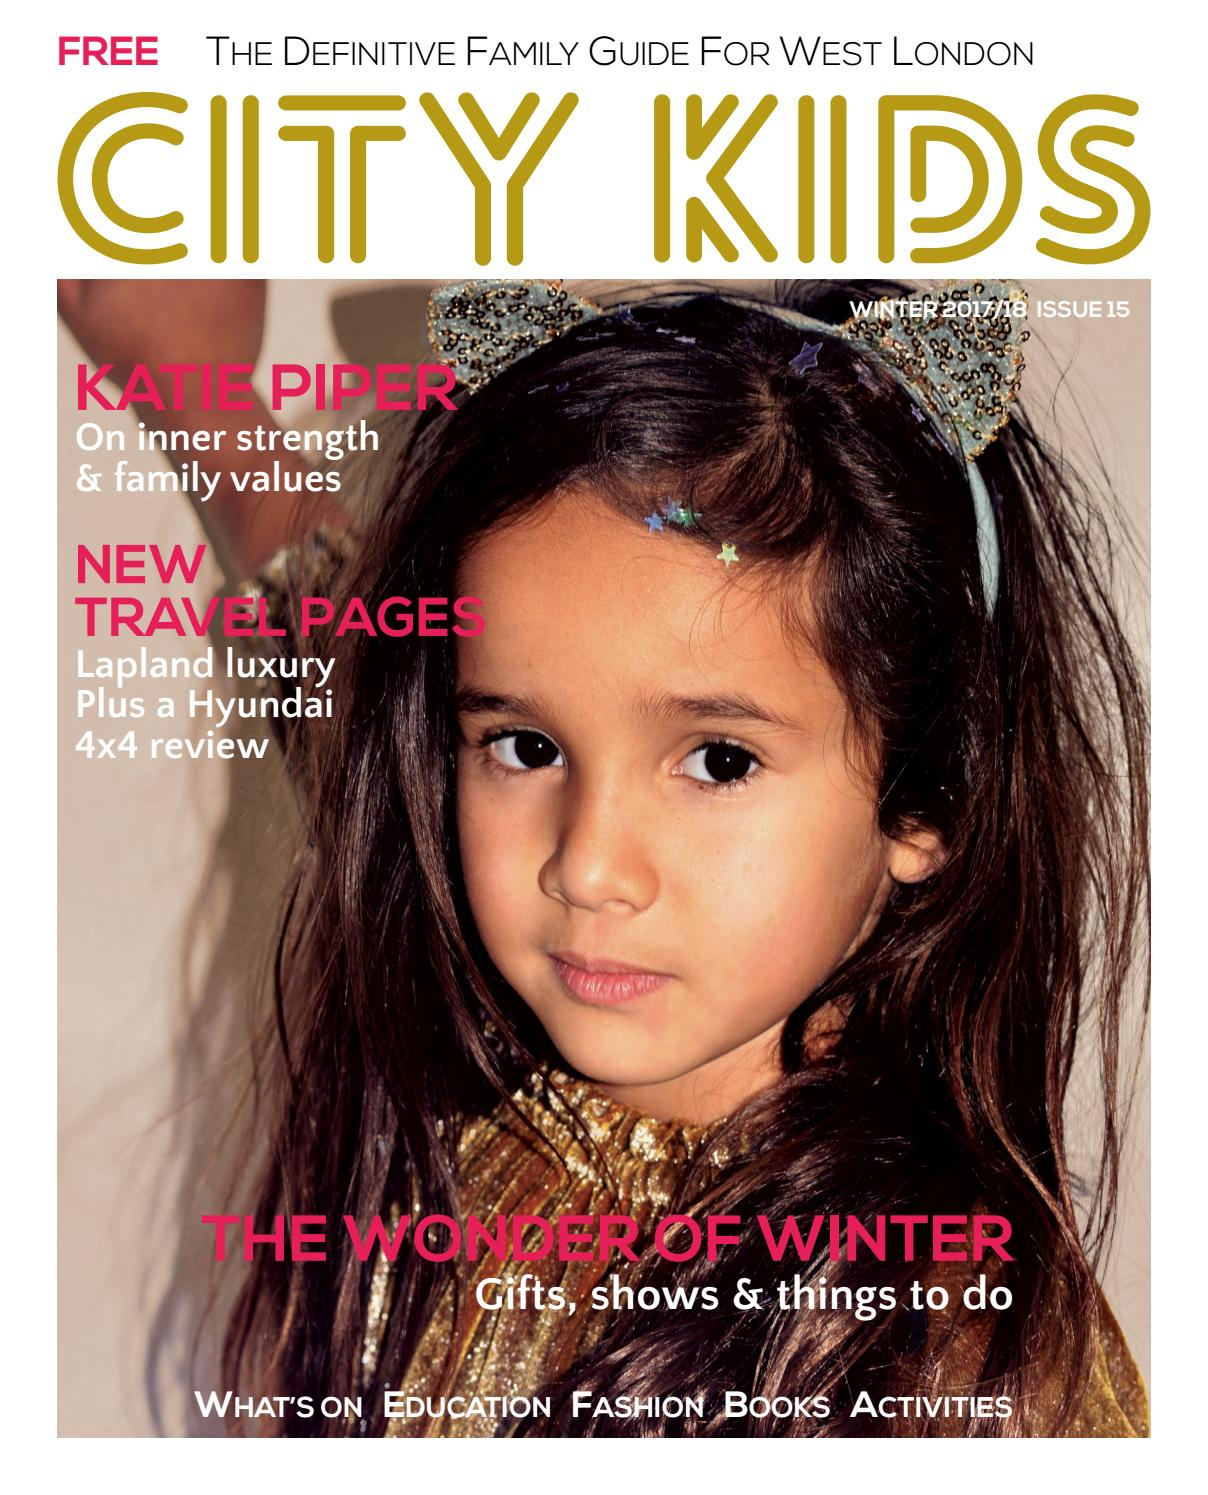 c52b9b0914 City Kids Winter 2017 by CITYKIDS - issuu